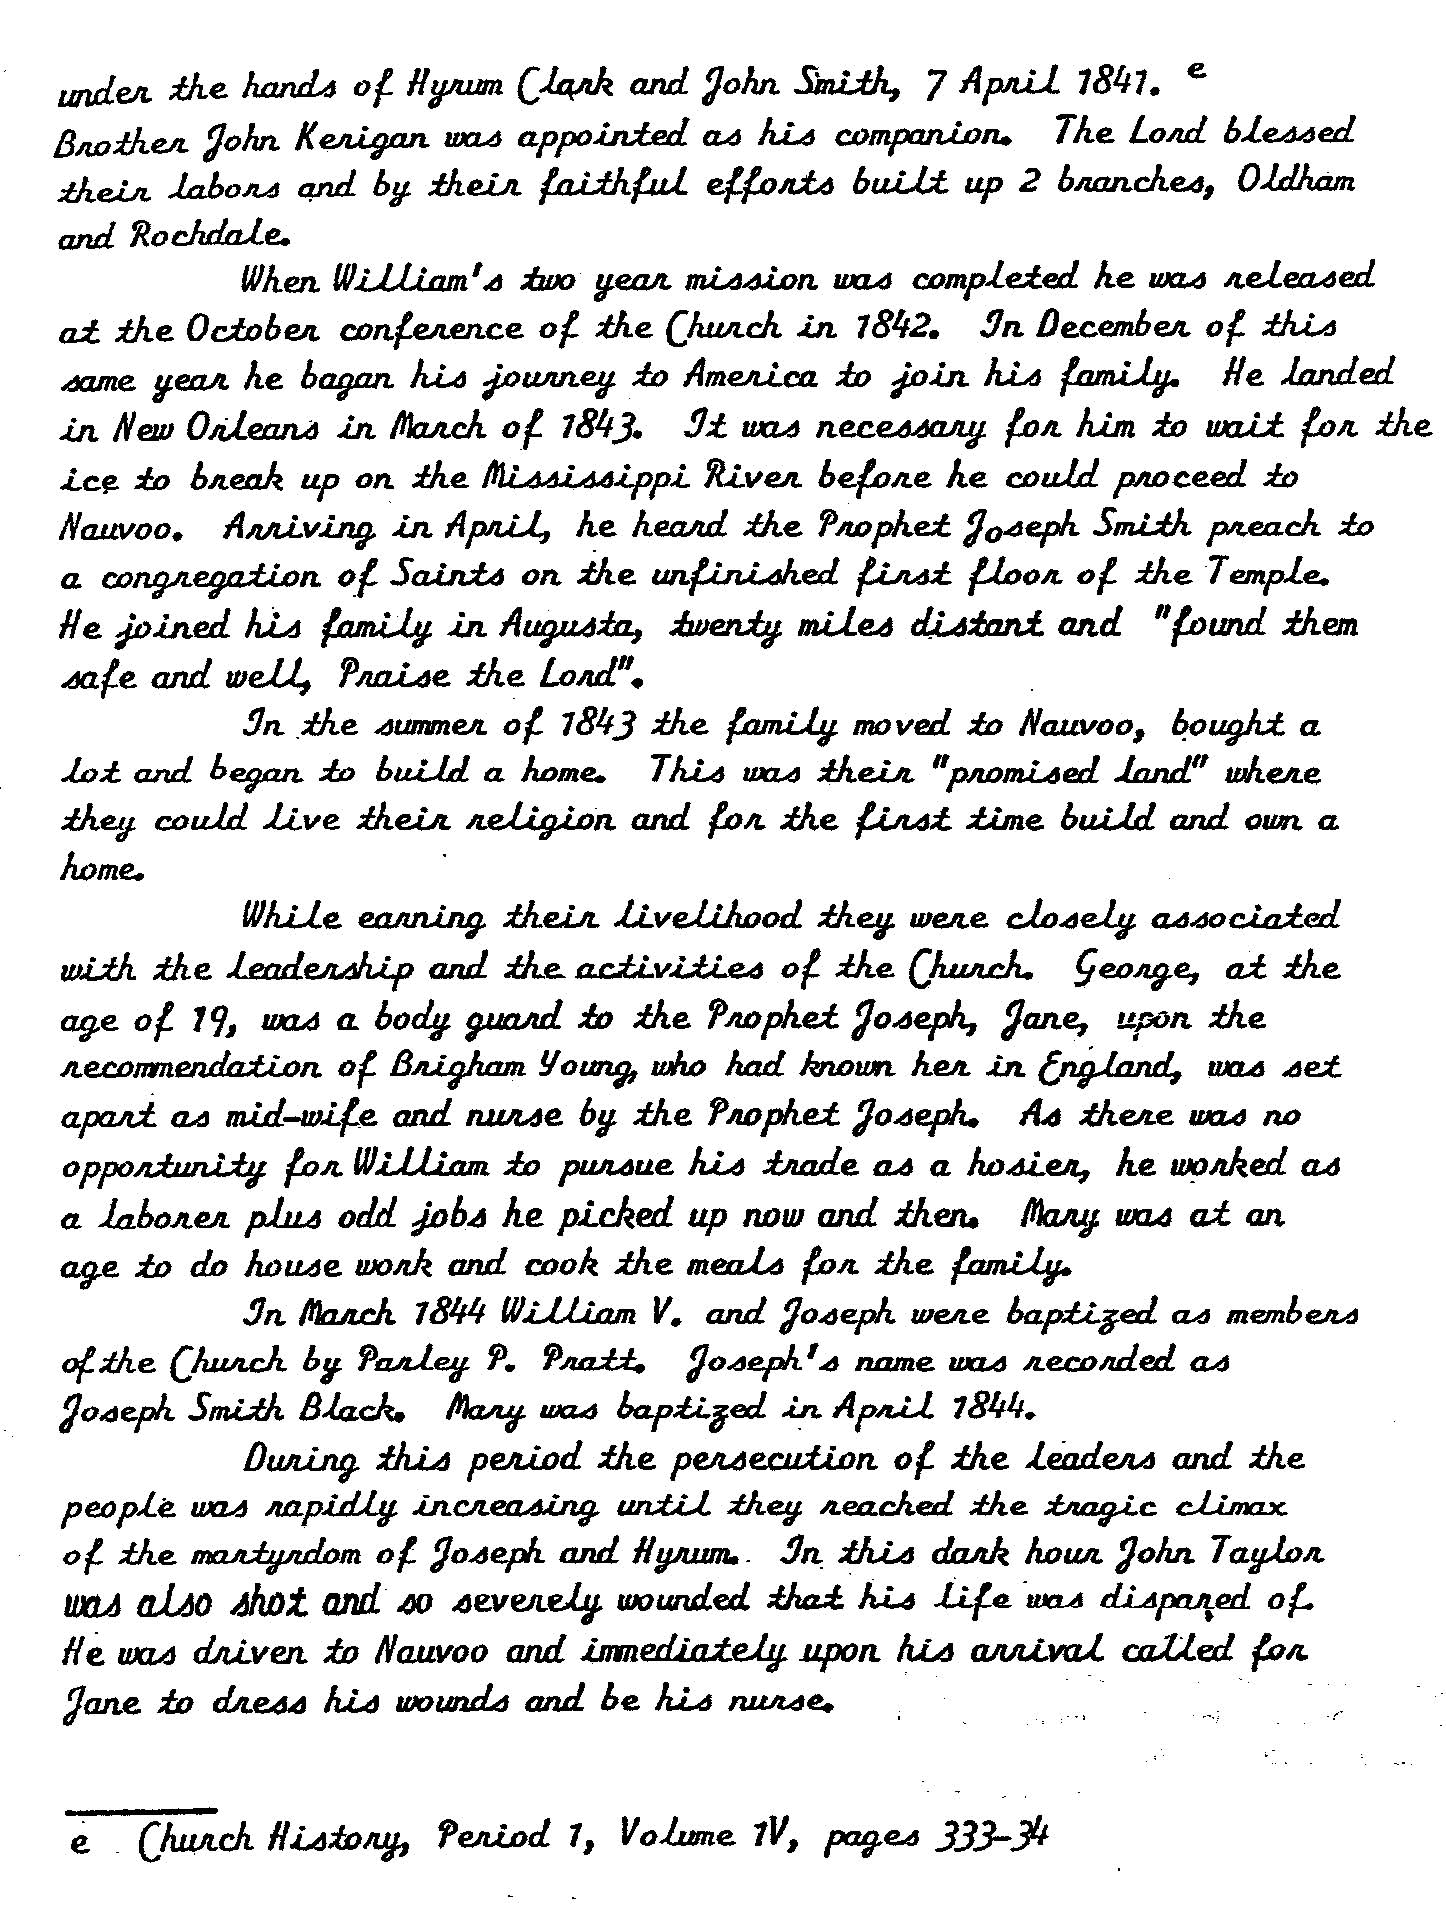 a biographical sketch of walter walles genealogist A history and genealogy of the warder family in virginia, kentucky and illinois [database on-line] provo, ut: ancestrycom operations inc, 2005 original data: warder, walter a history and genealogy of the warder family in virginia, kentucky and illinois biographical sketch of rev walter.